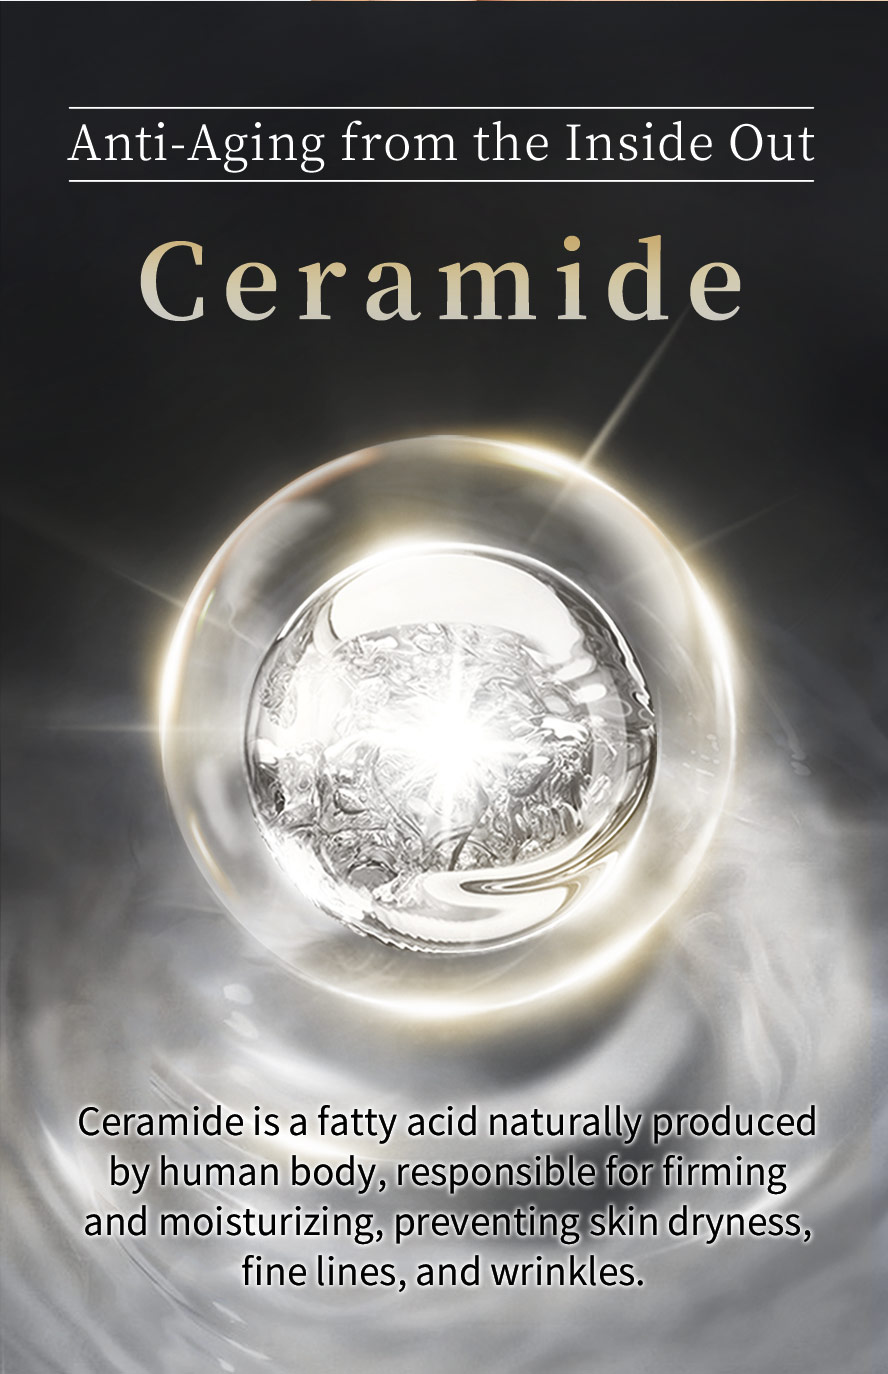 BHK's Ceramide reduce the appearance of fine lines and other signs of aging.